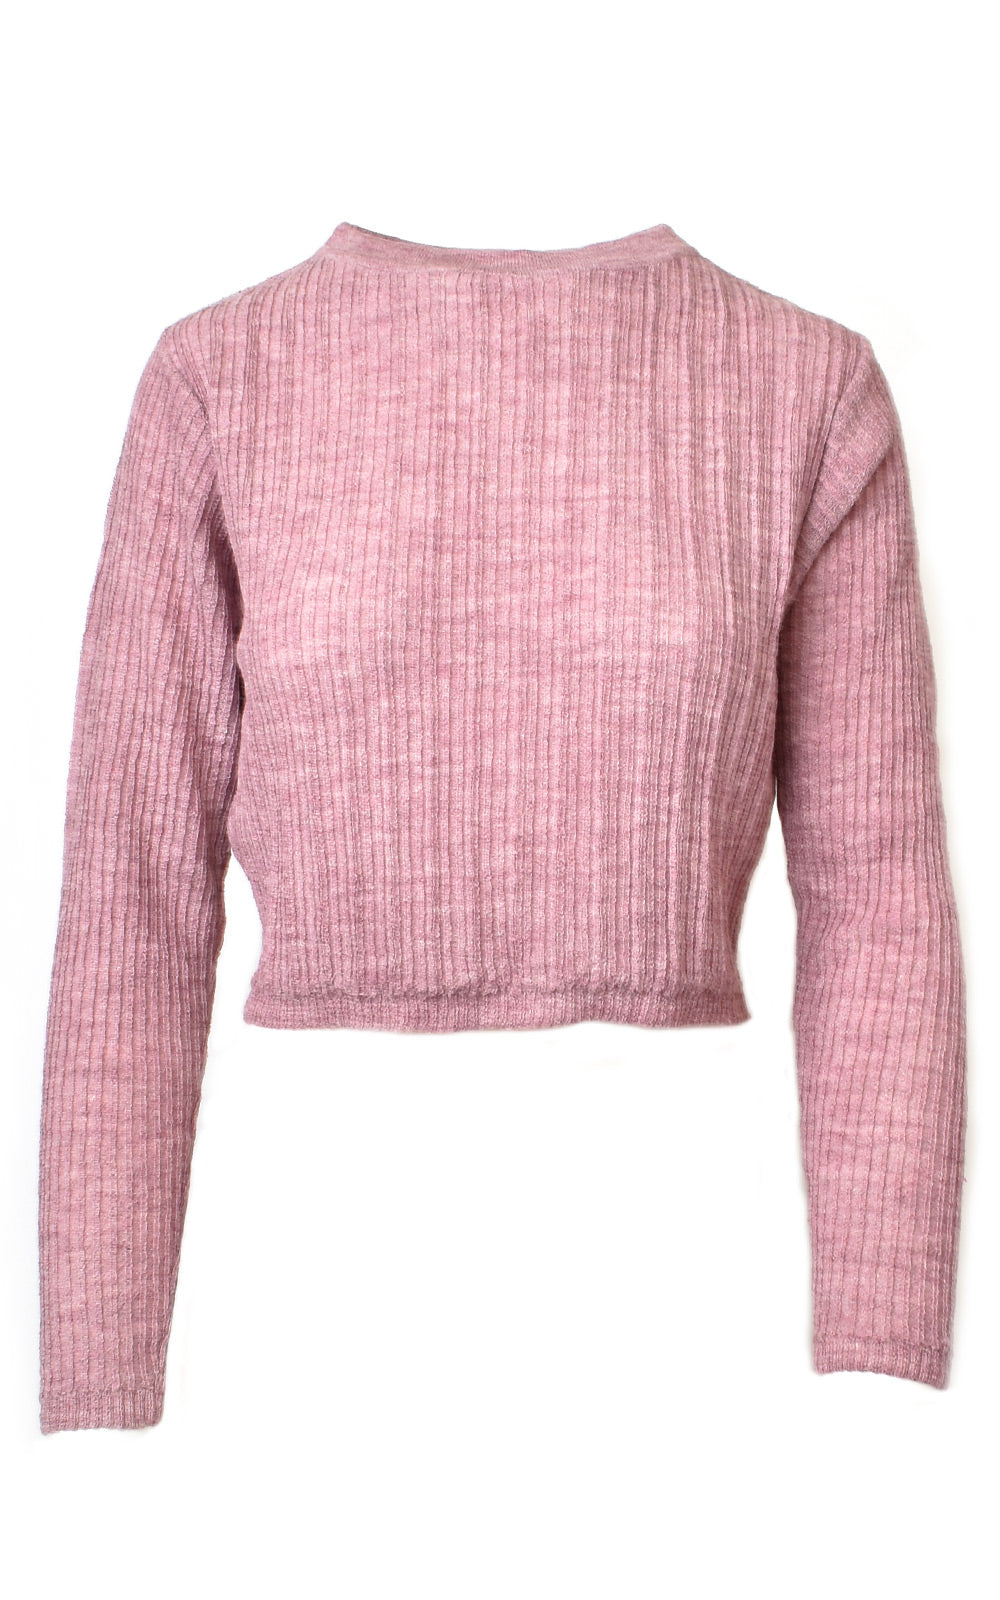 Mantari Laura Alpaca Ribbed Cropped Sweater Pink